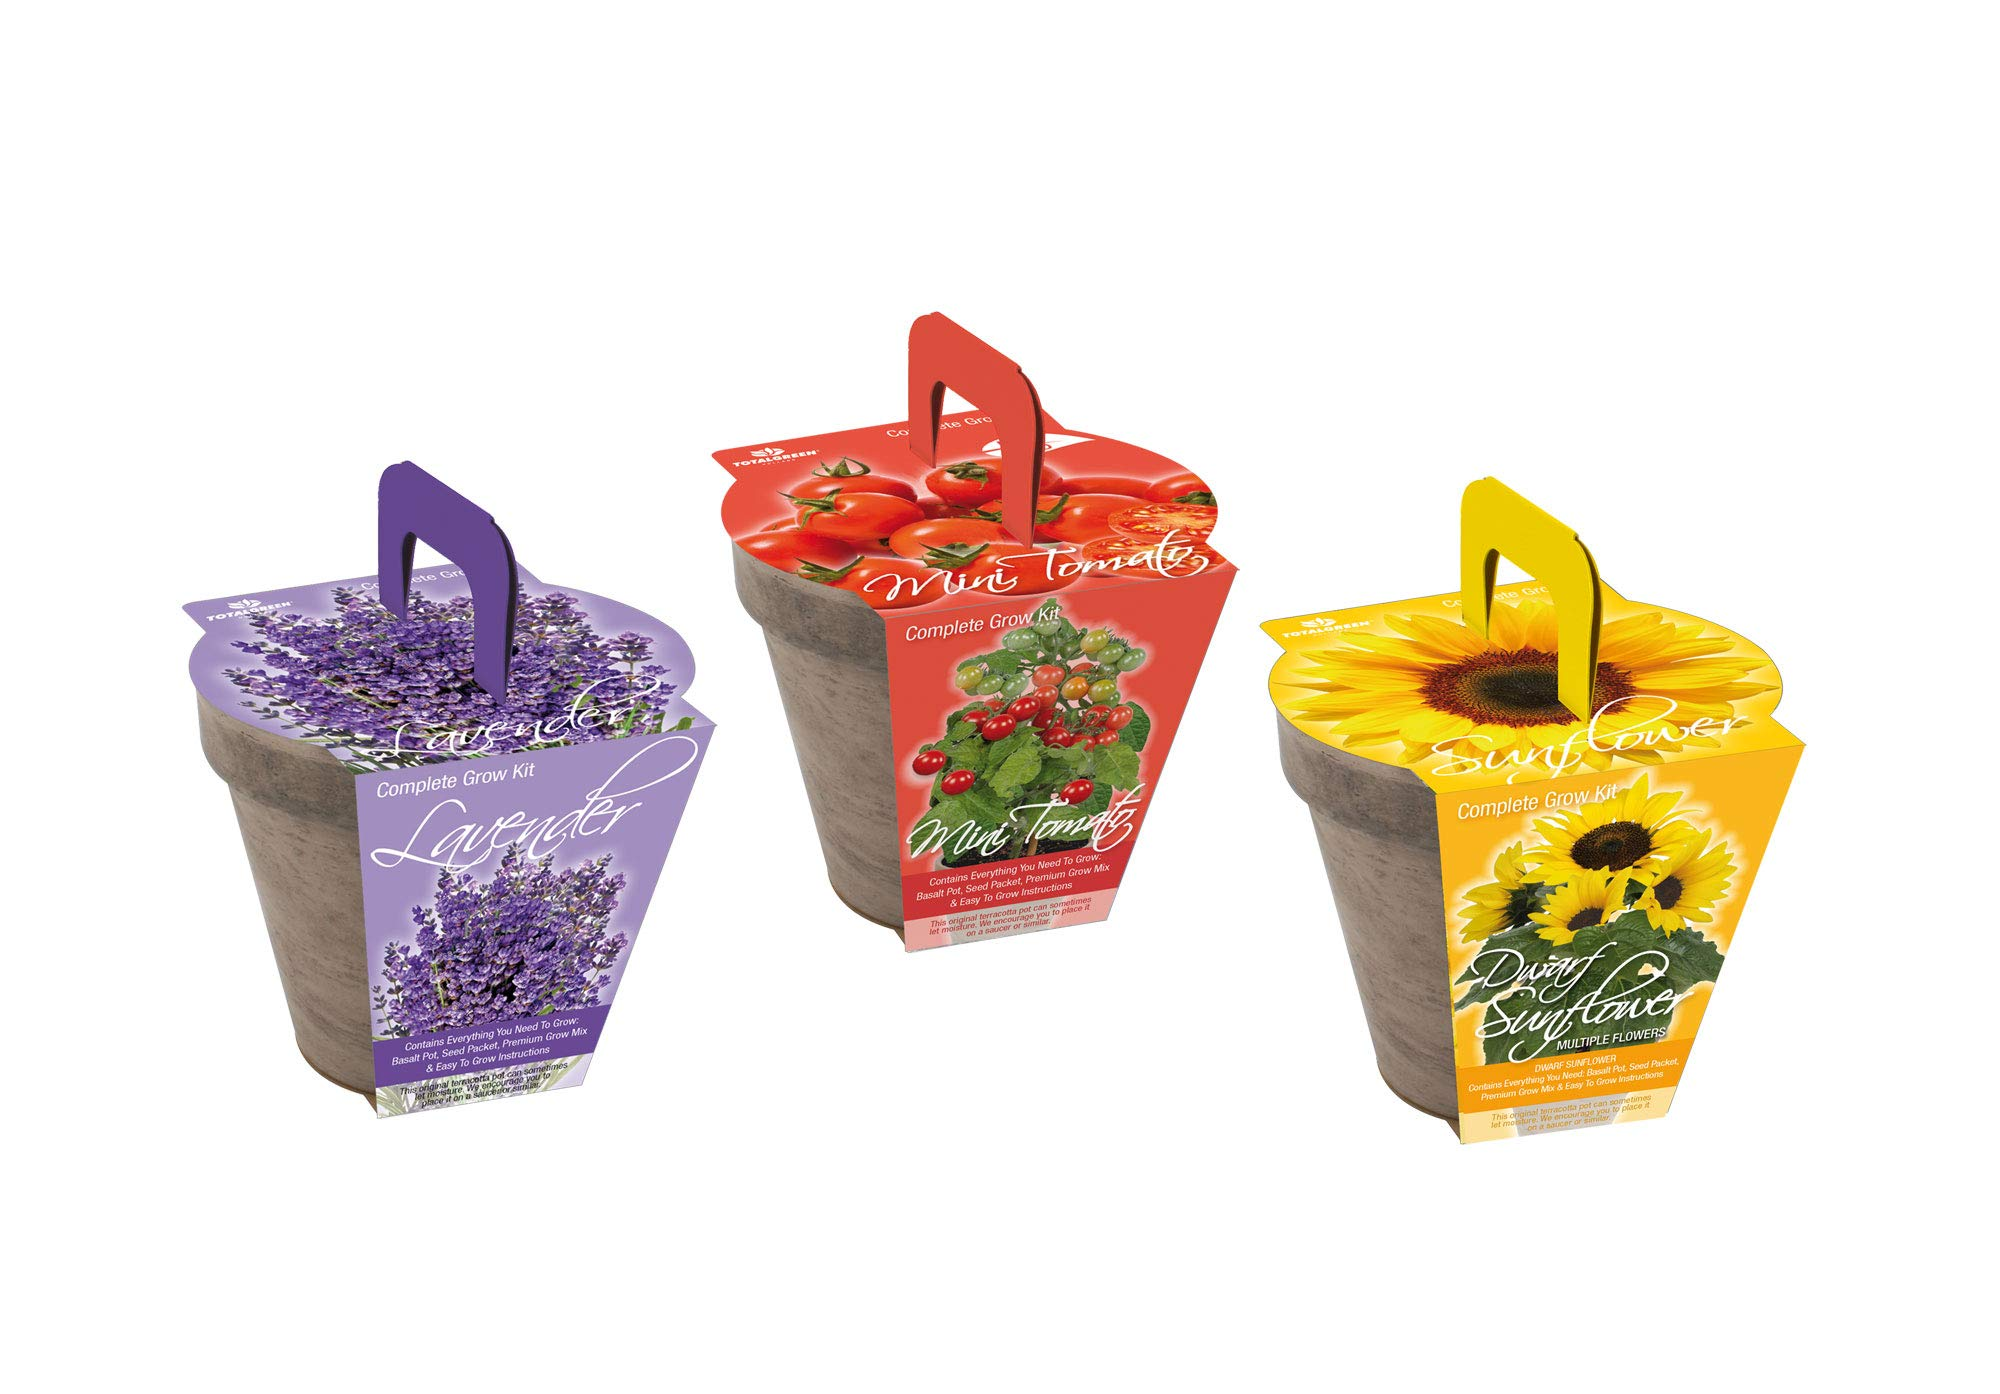 TotalGreen Holland Special Mini Tomato Grow Kit | Grow Fresh Mini Tomato Seeds Indoors | Great Gift Item | Grow Your Own Mini Tomato Plants in Unique Basalt Pot | Exclusive Kit by TotalGreen Holland by TotalGreen Holland (Image #7)